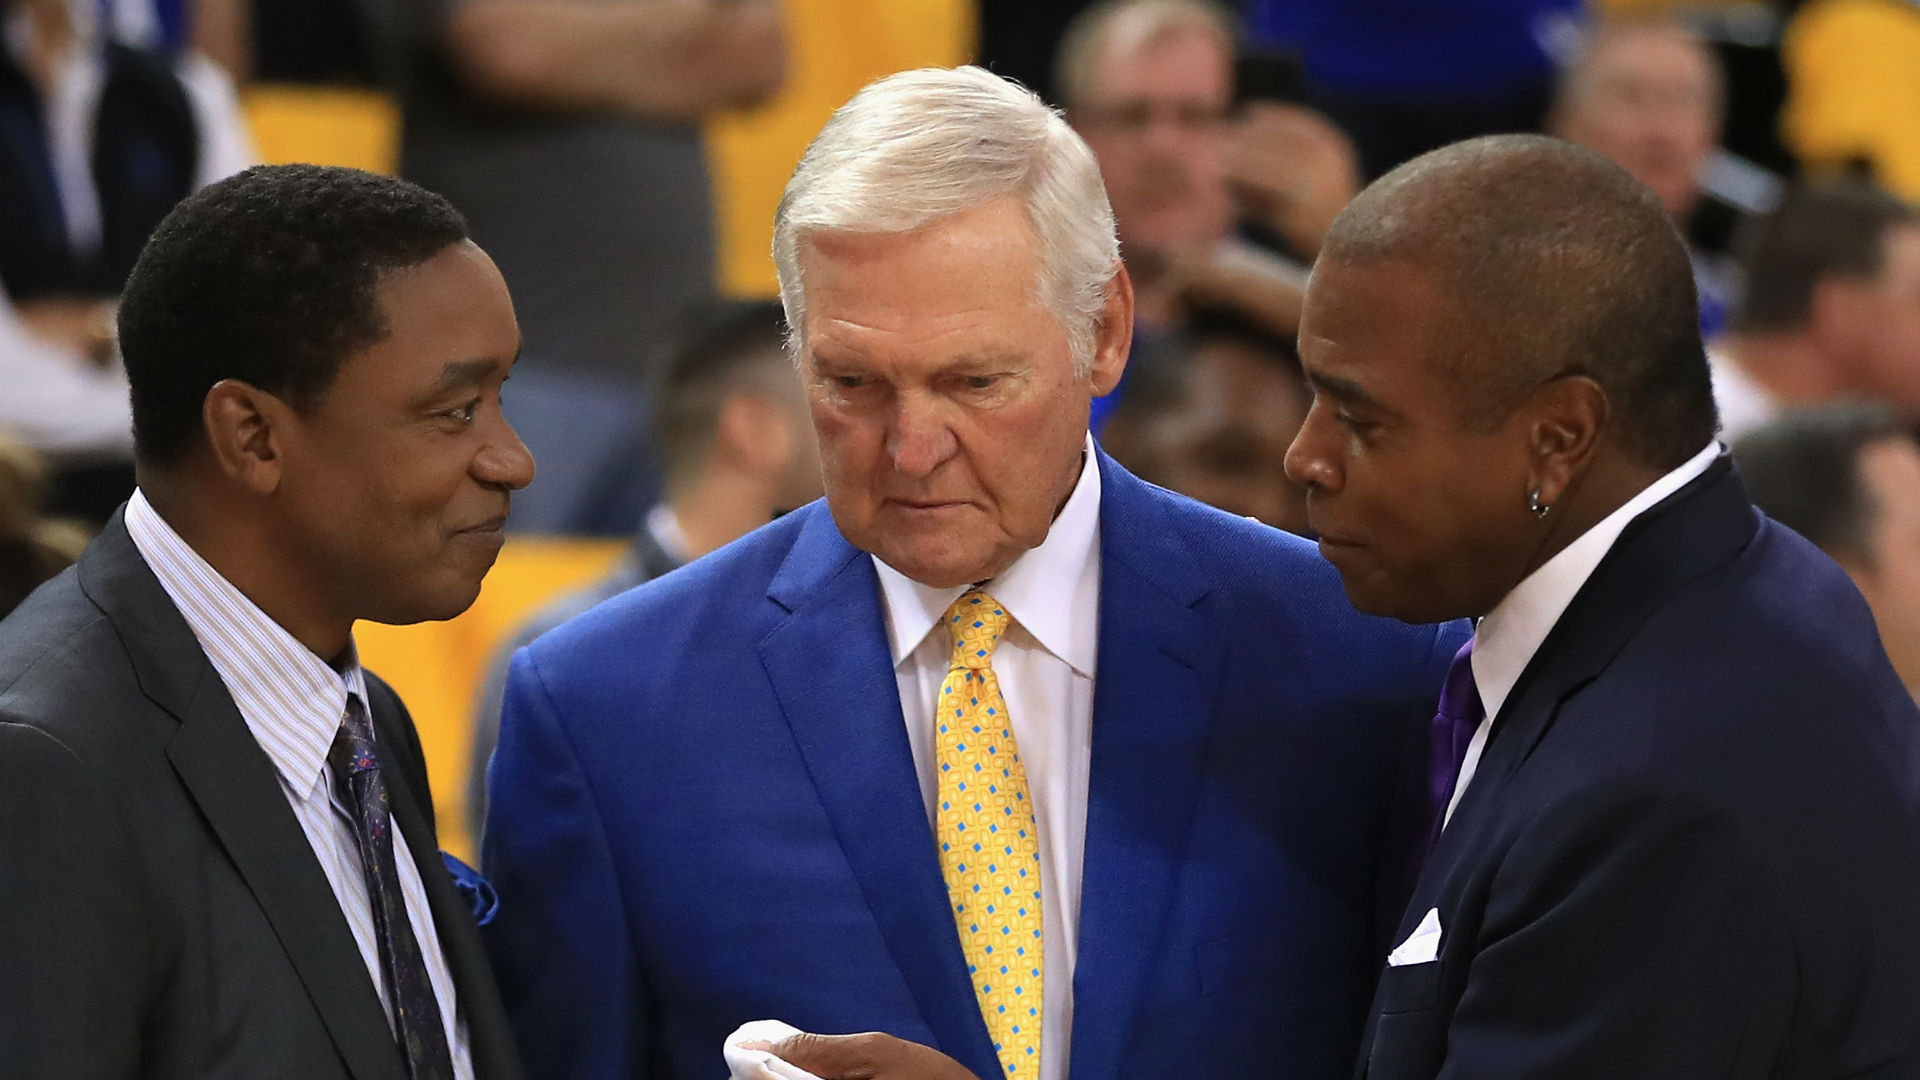 NBA icon Jerry West bound for Clippers after Warriors title runs